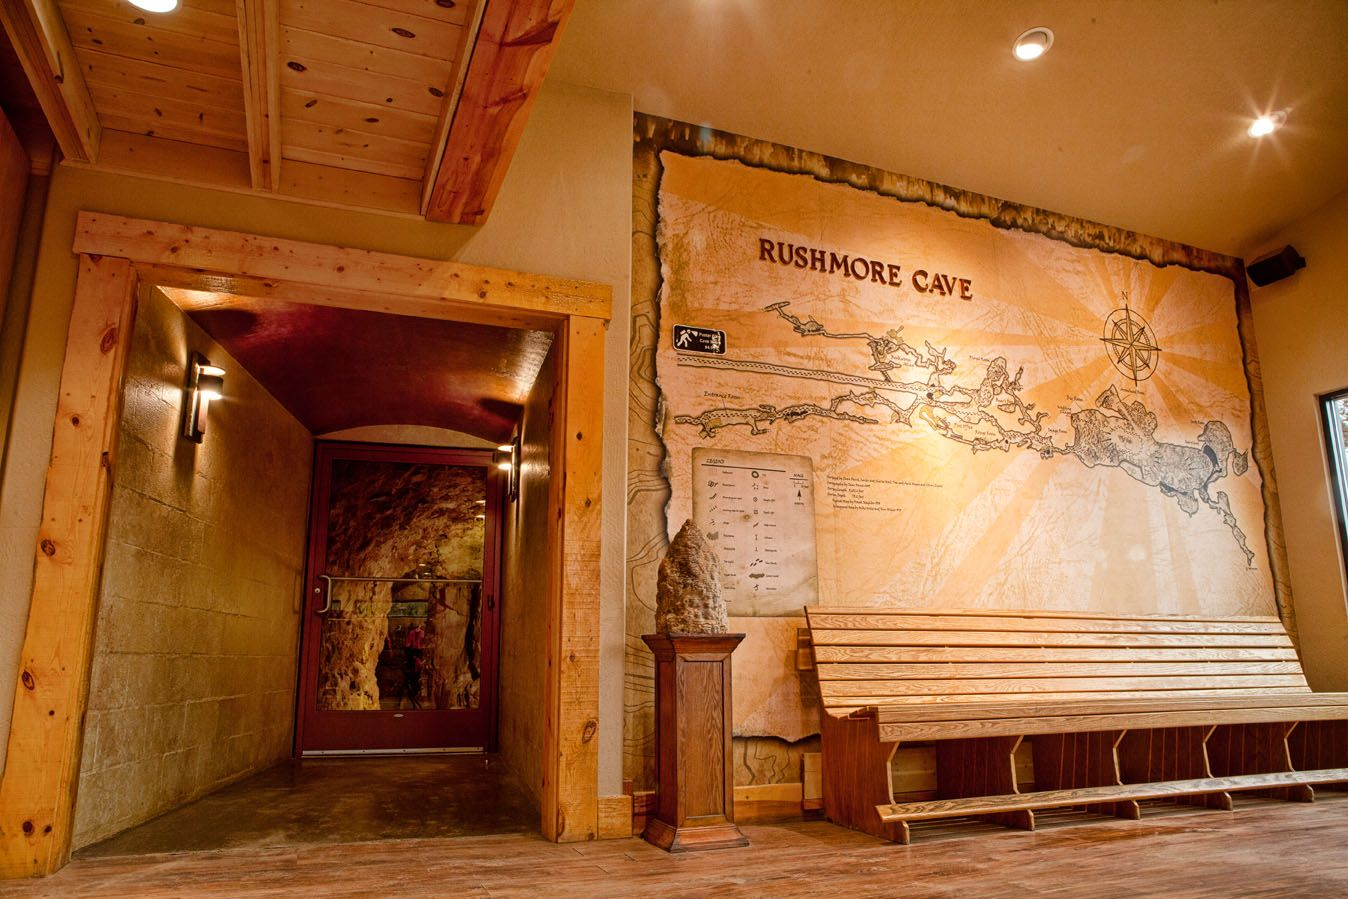 First discovered by miners in the 1800's, Rushmore Cave has grown in size and passages are still being explored.